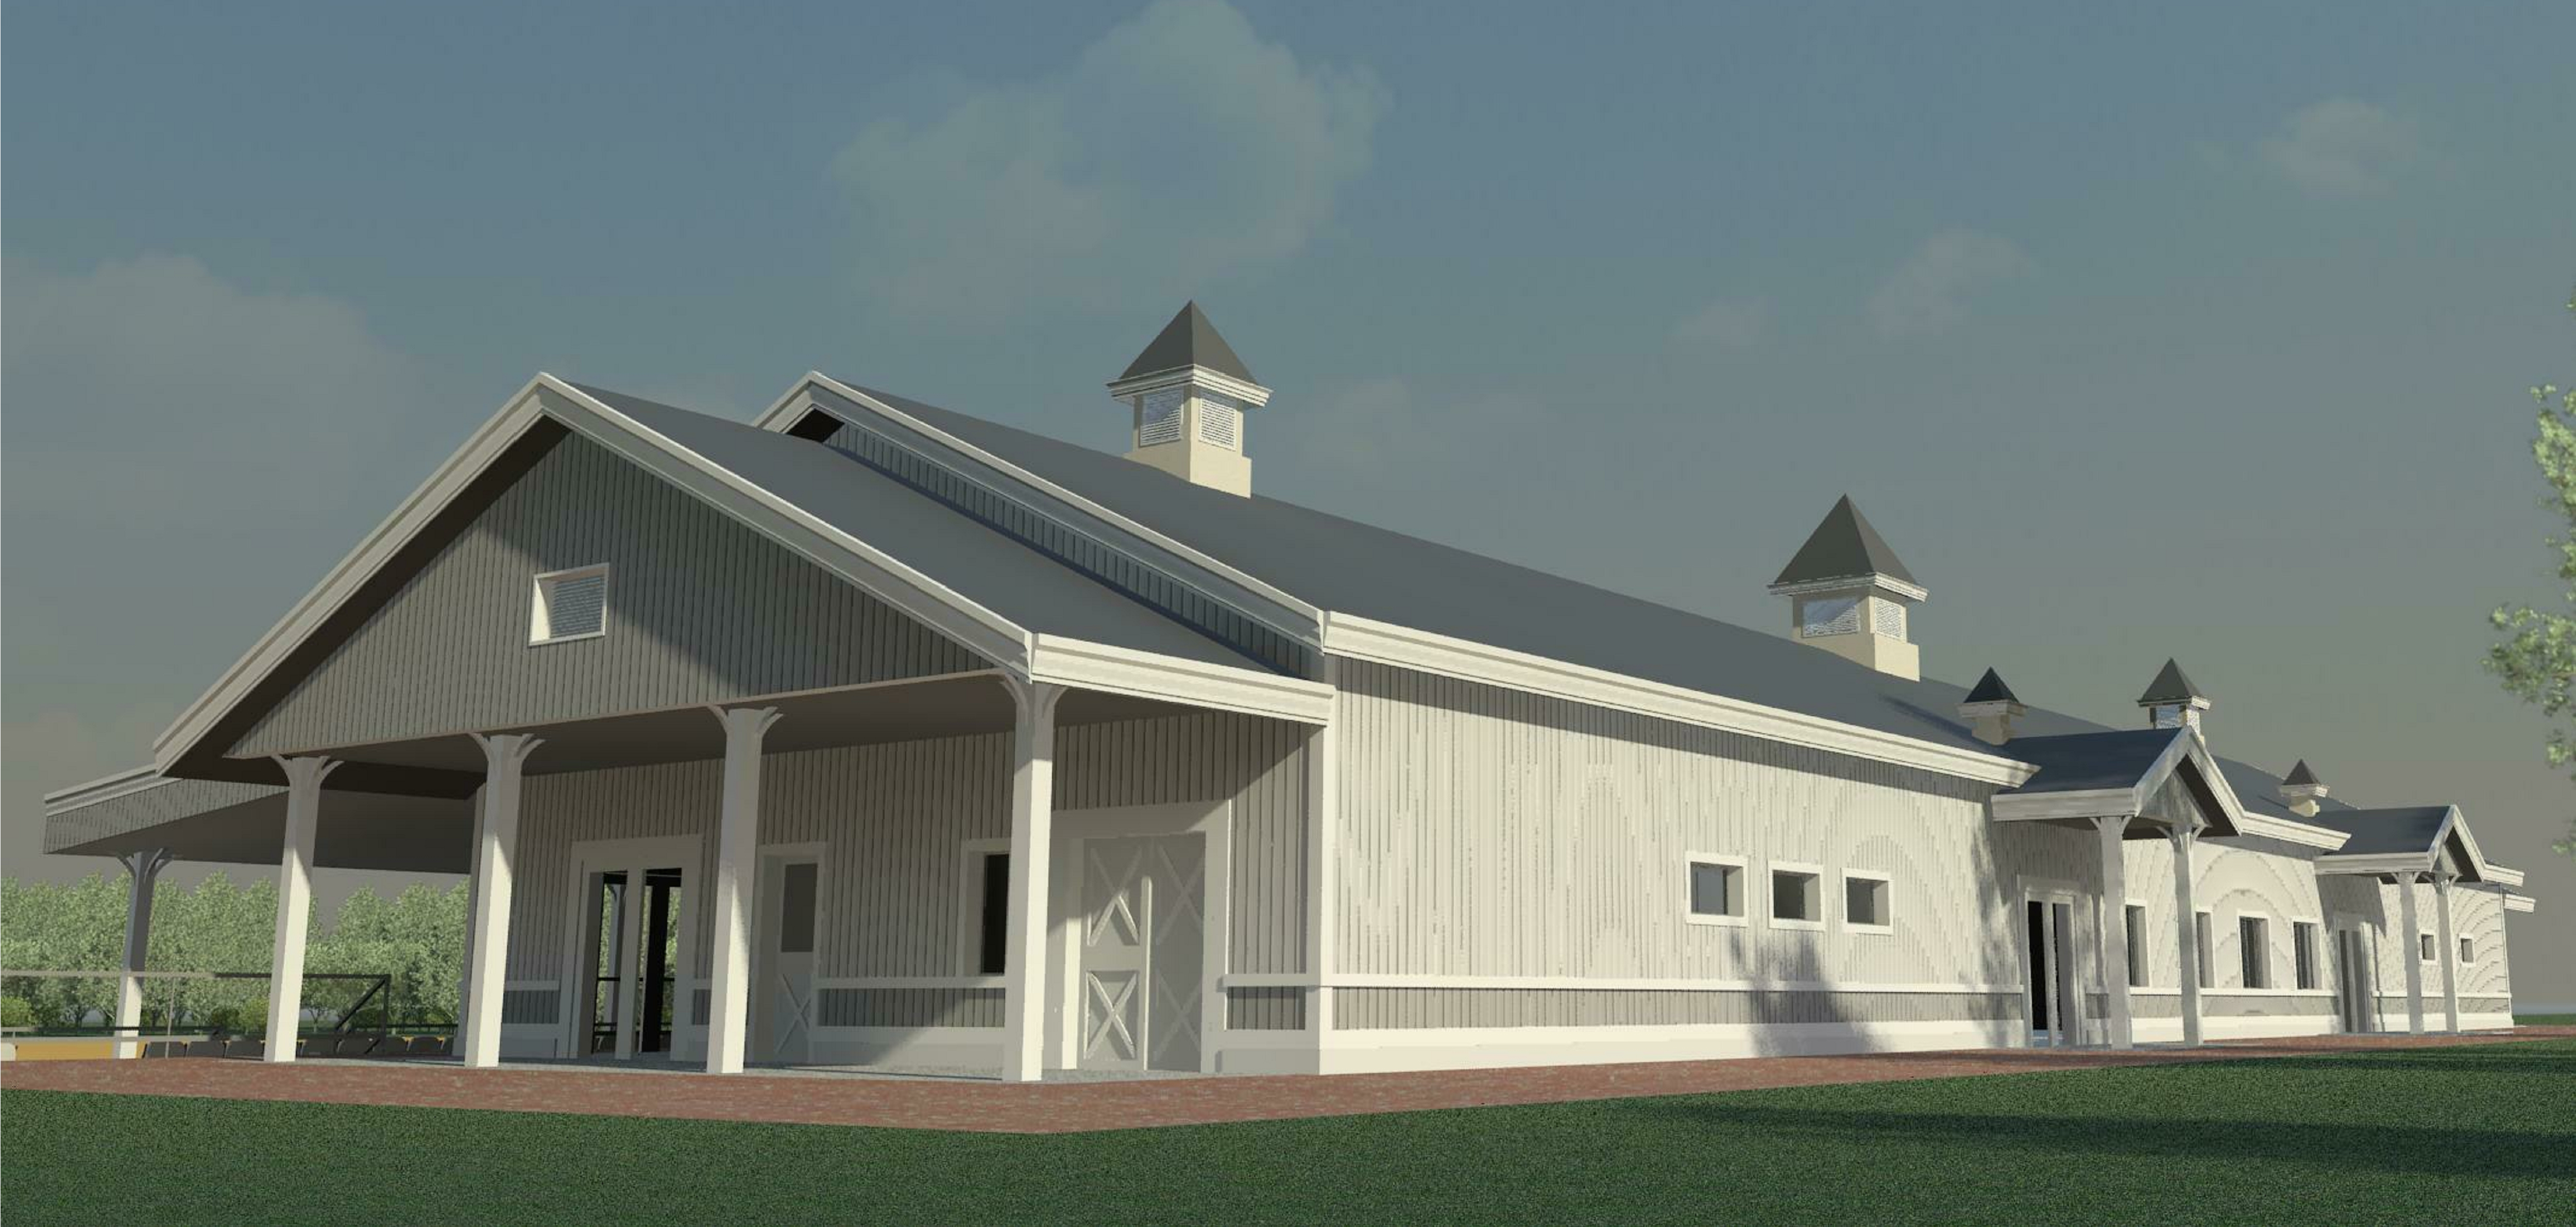 Artists Rendering Of The New Pavilion At Caledon Pan Am Equestrian Park Photo By Courtesy Management Group